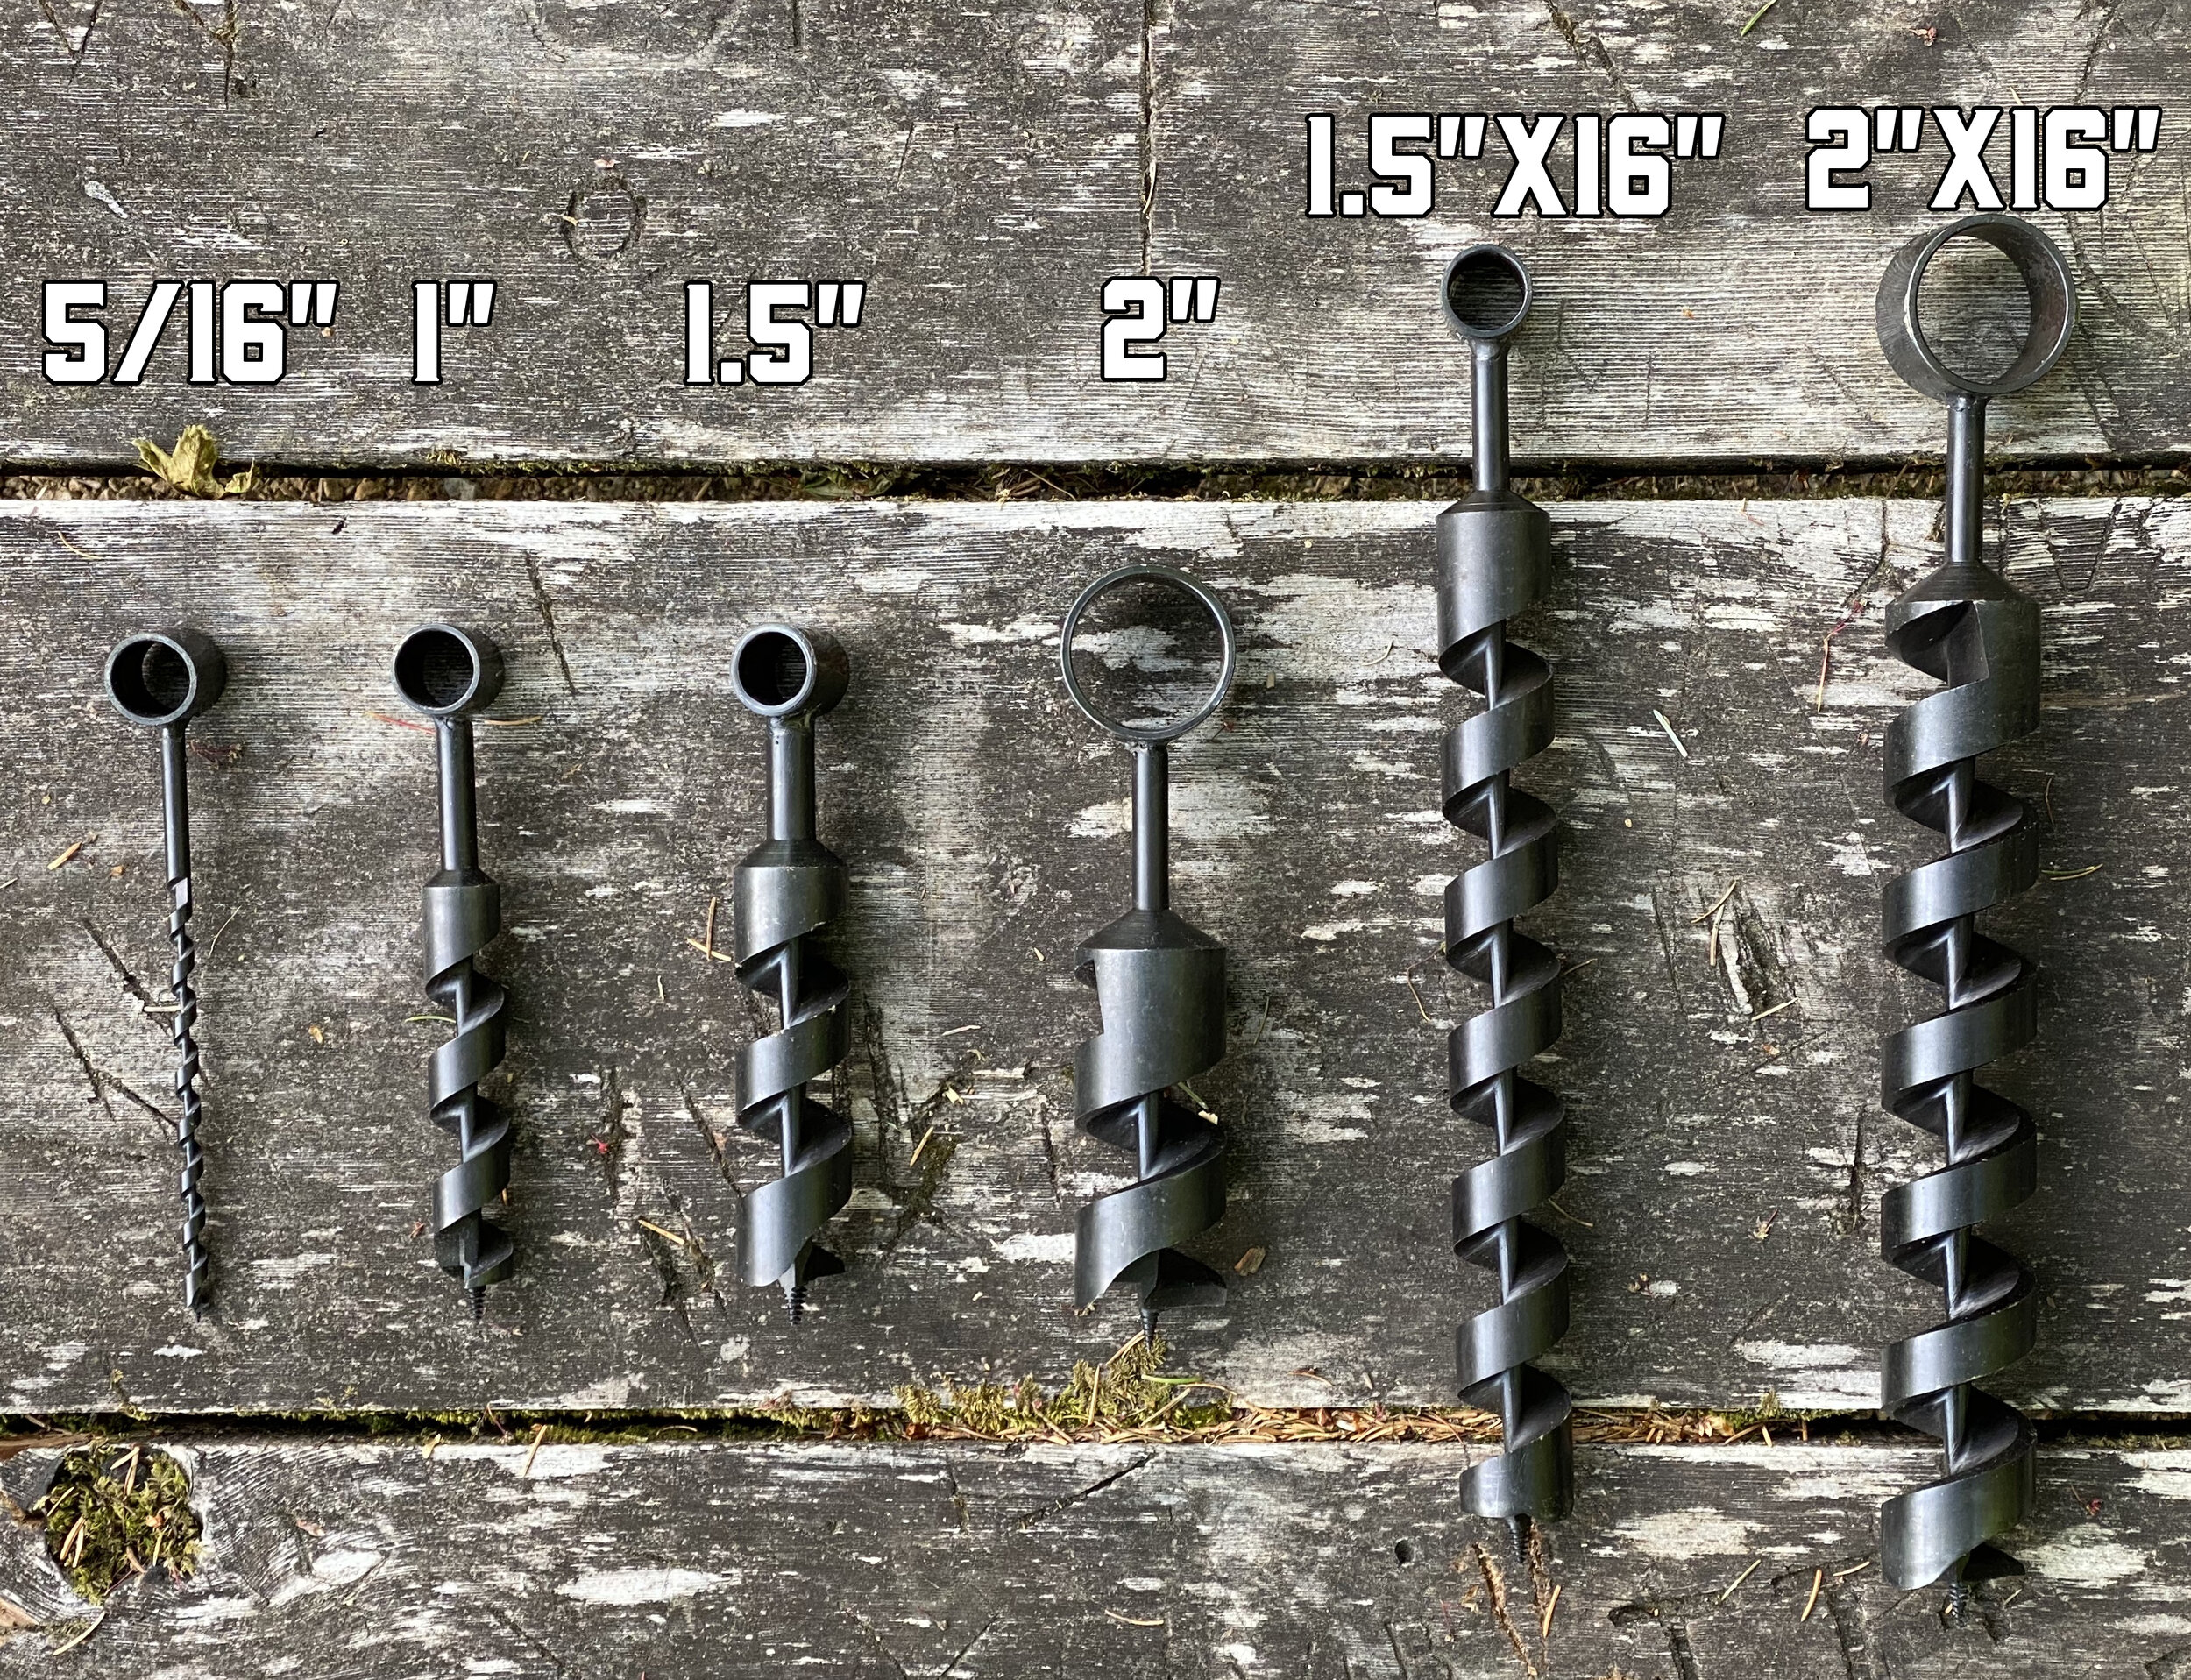 """CRIZTA 1/"""" x 12/"""" Scotch Eye Wood Auger Drill Bit Hand Auger for Bushcraft Backpack and Camping Perfect Addition Tool to Survival and Camping Gear Packs"""